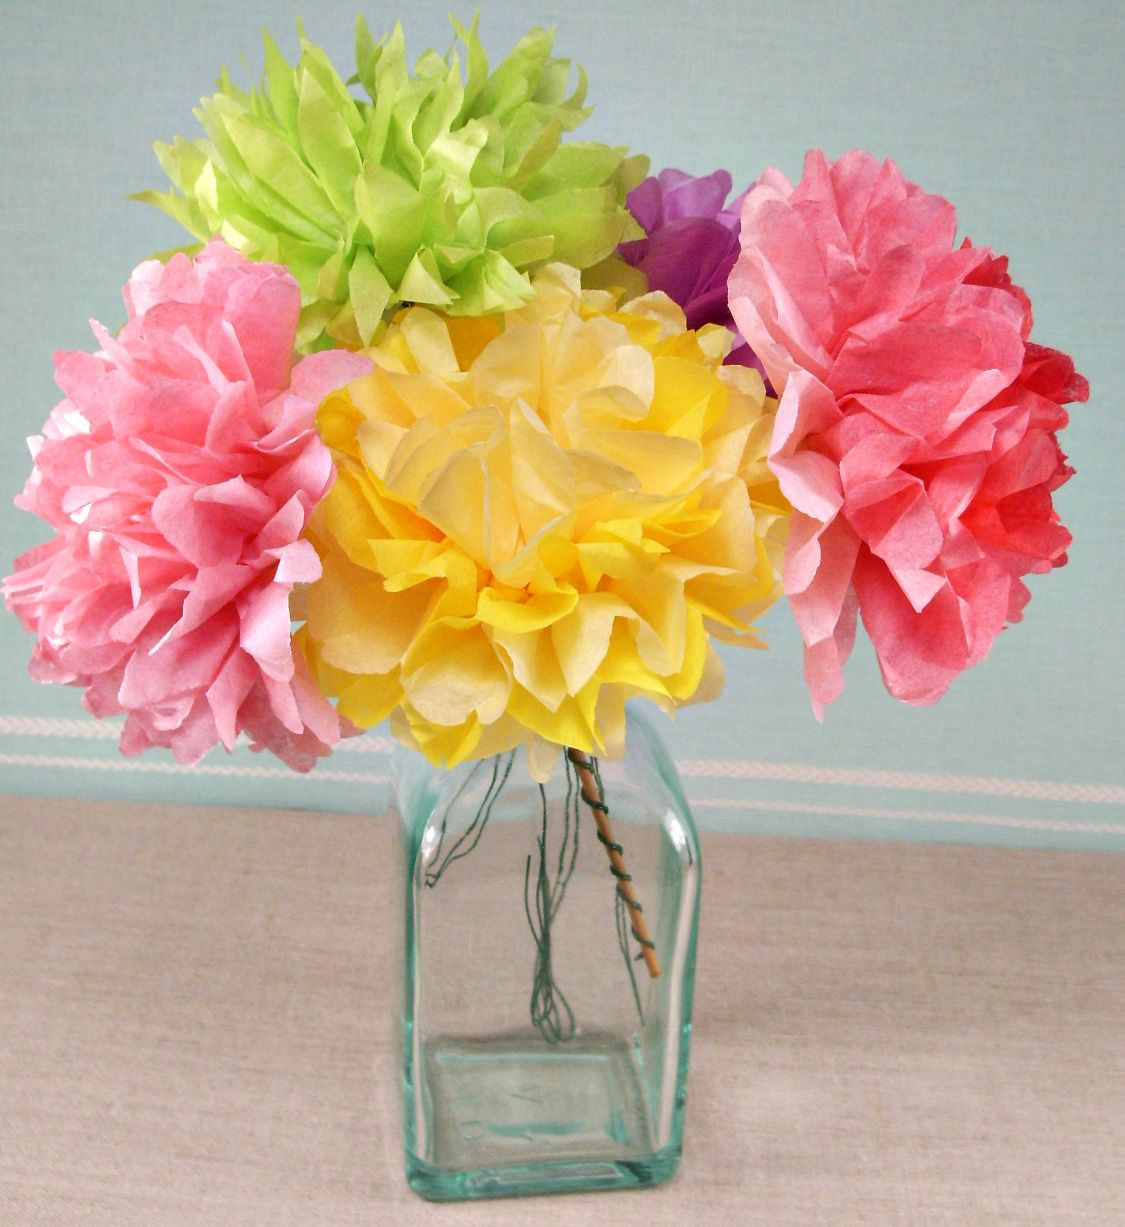 Making these myself for a salad luncheoneasy and inexpensive making these myself for a salad luncheoneasy and inexpensive paper flowers for kidspaper dhlflorist Images